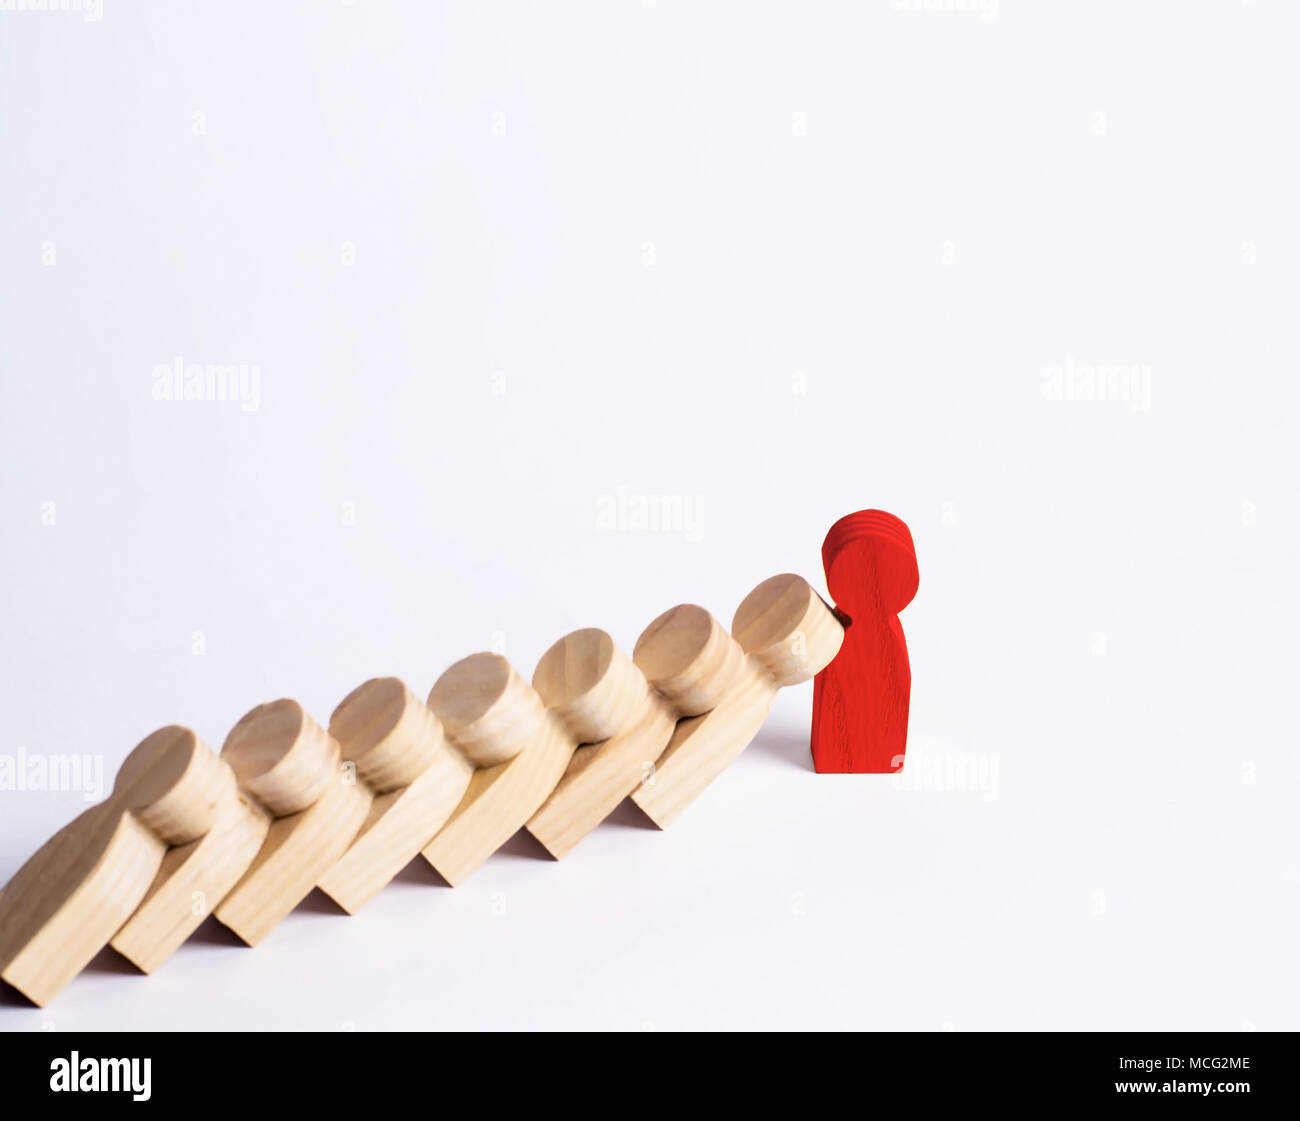 Red Dominos Stock Photos & Red Dominos Stock Images - Alamy